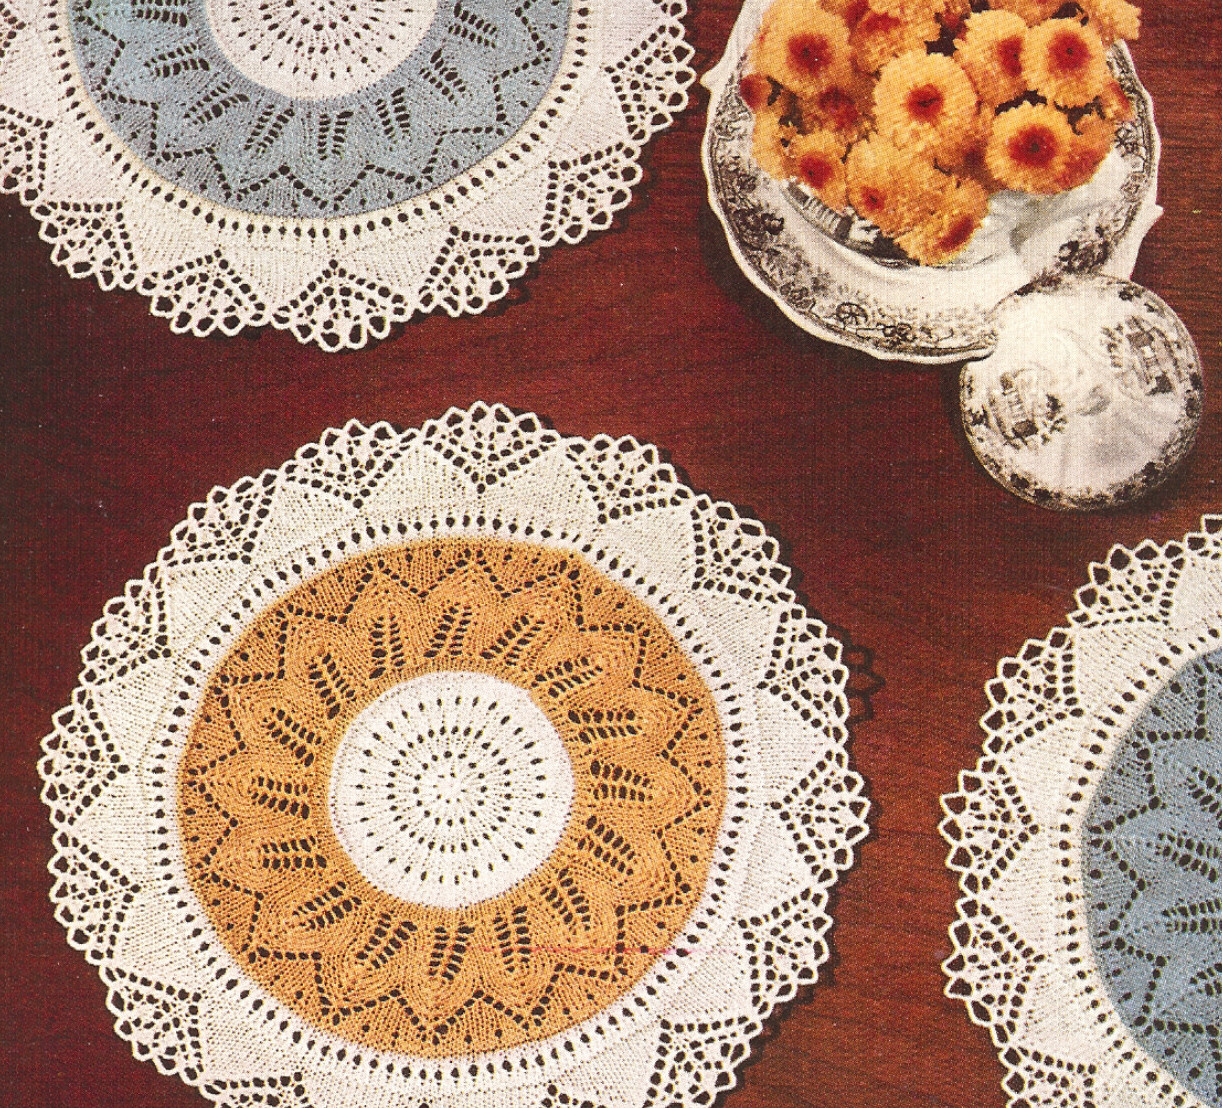 Vintage Knitting PATTERN to make Lace Doily Mat ...